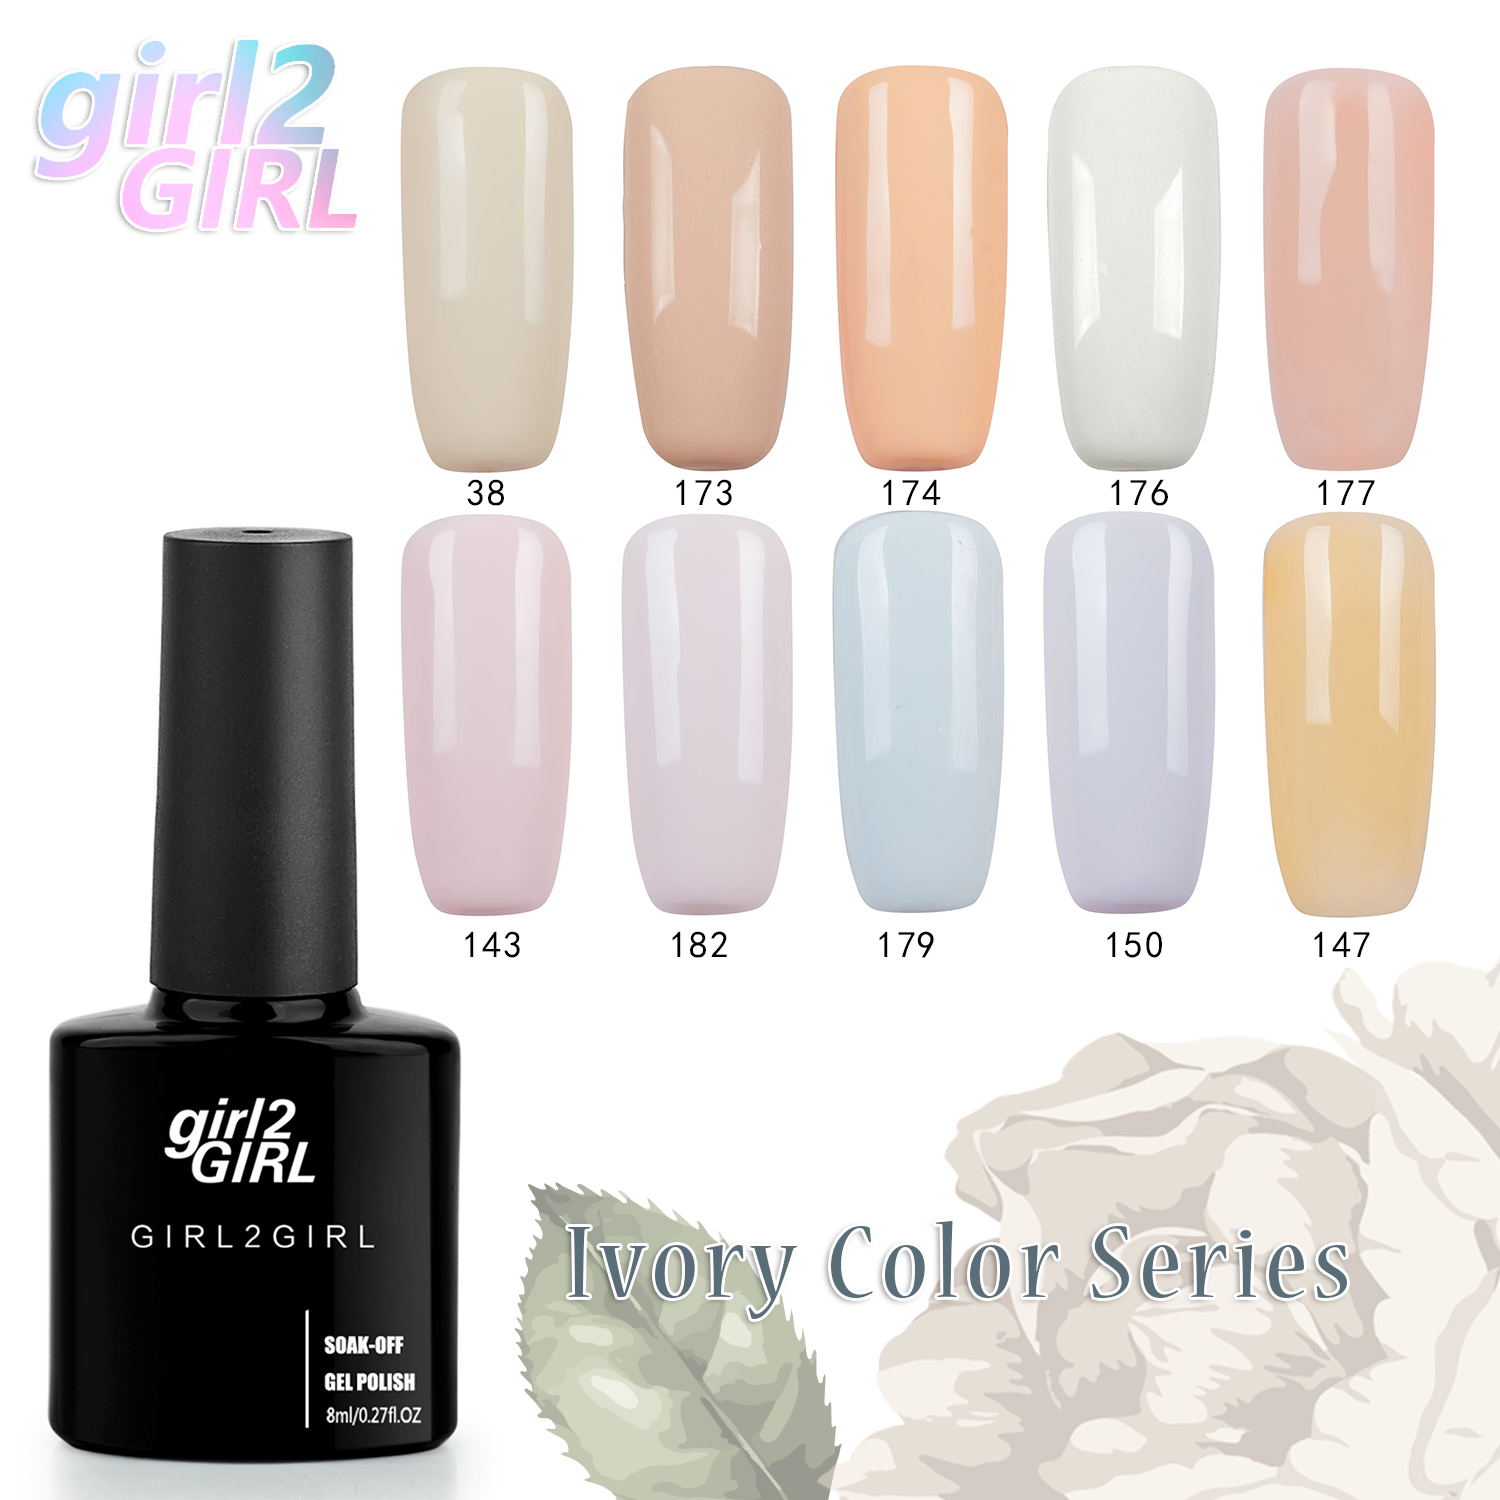 girl2Girl UV Gel Nail Polish Varnish Soak Off 8ml SOLID COLOR UV Nail Polish Sequins  Manicure Gel Polish IVORY set